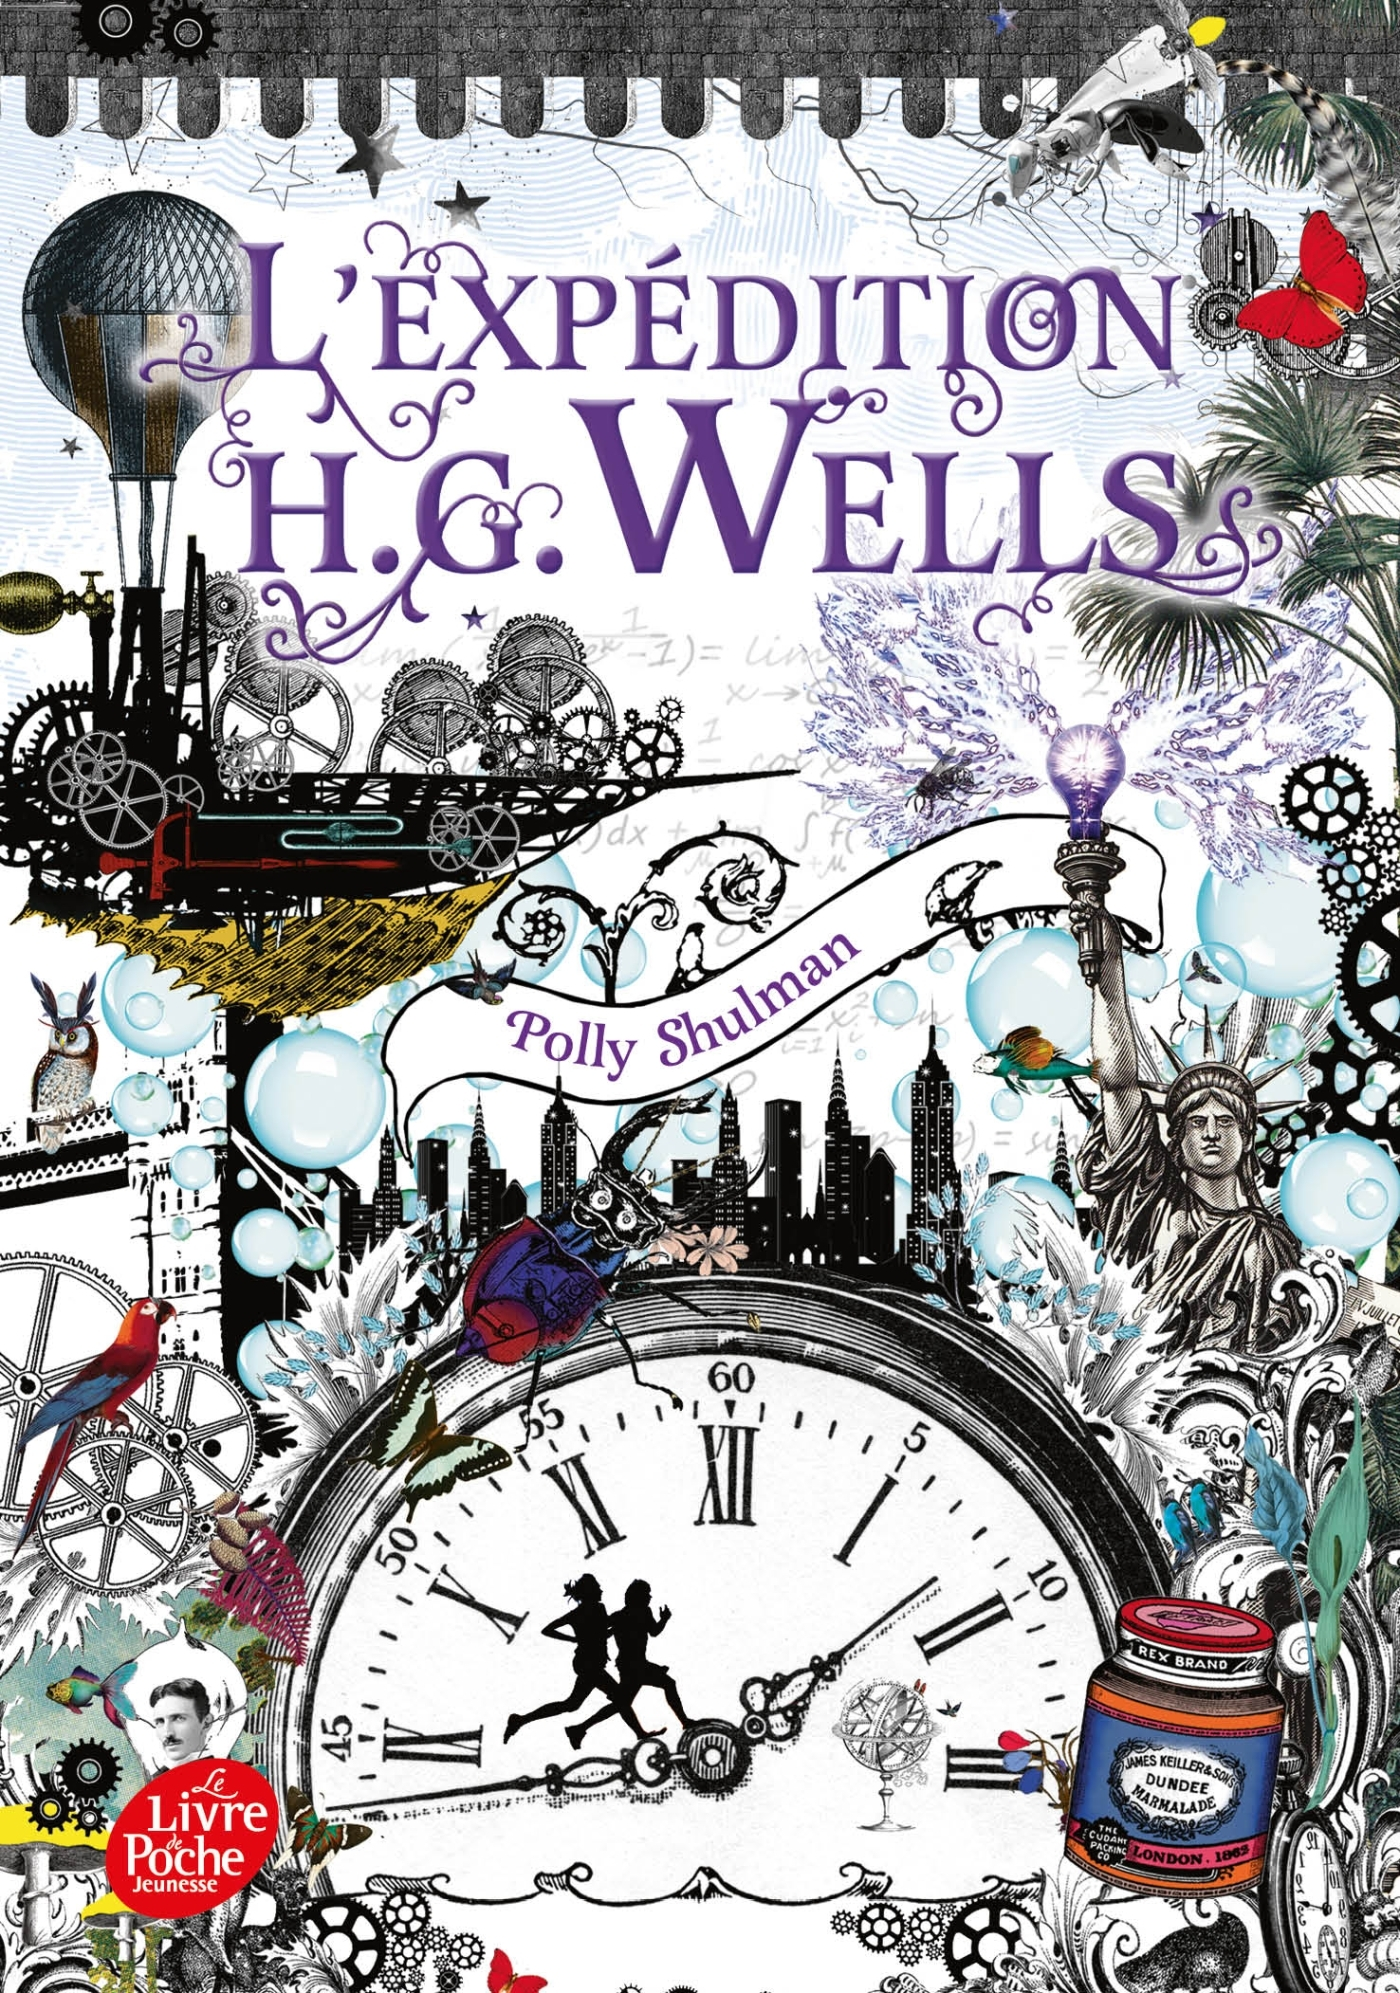 LA MALEDICTION DE GRIMM - T02 - L'EXPEDITION H.G. WELLS - LA MALEDICTION GRIMM - TOME 2